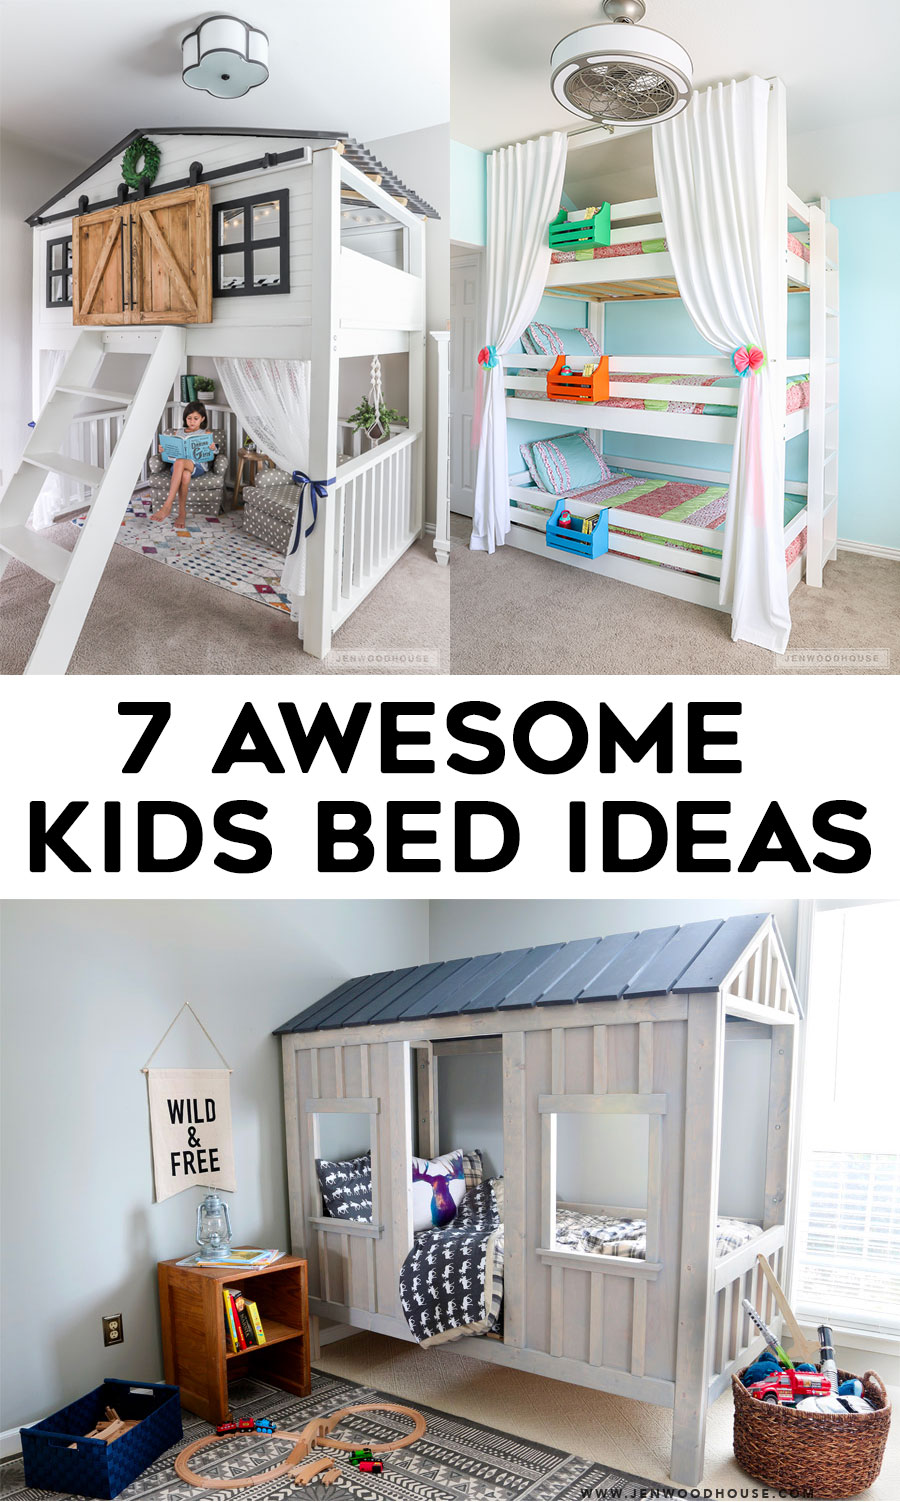 7 awesome DIY kids beds - Loft beds, Bunk Beds, and more.